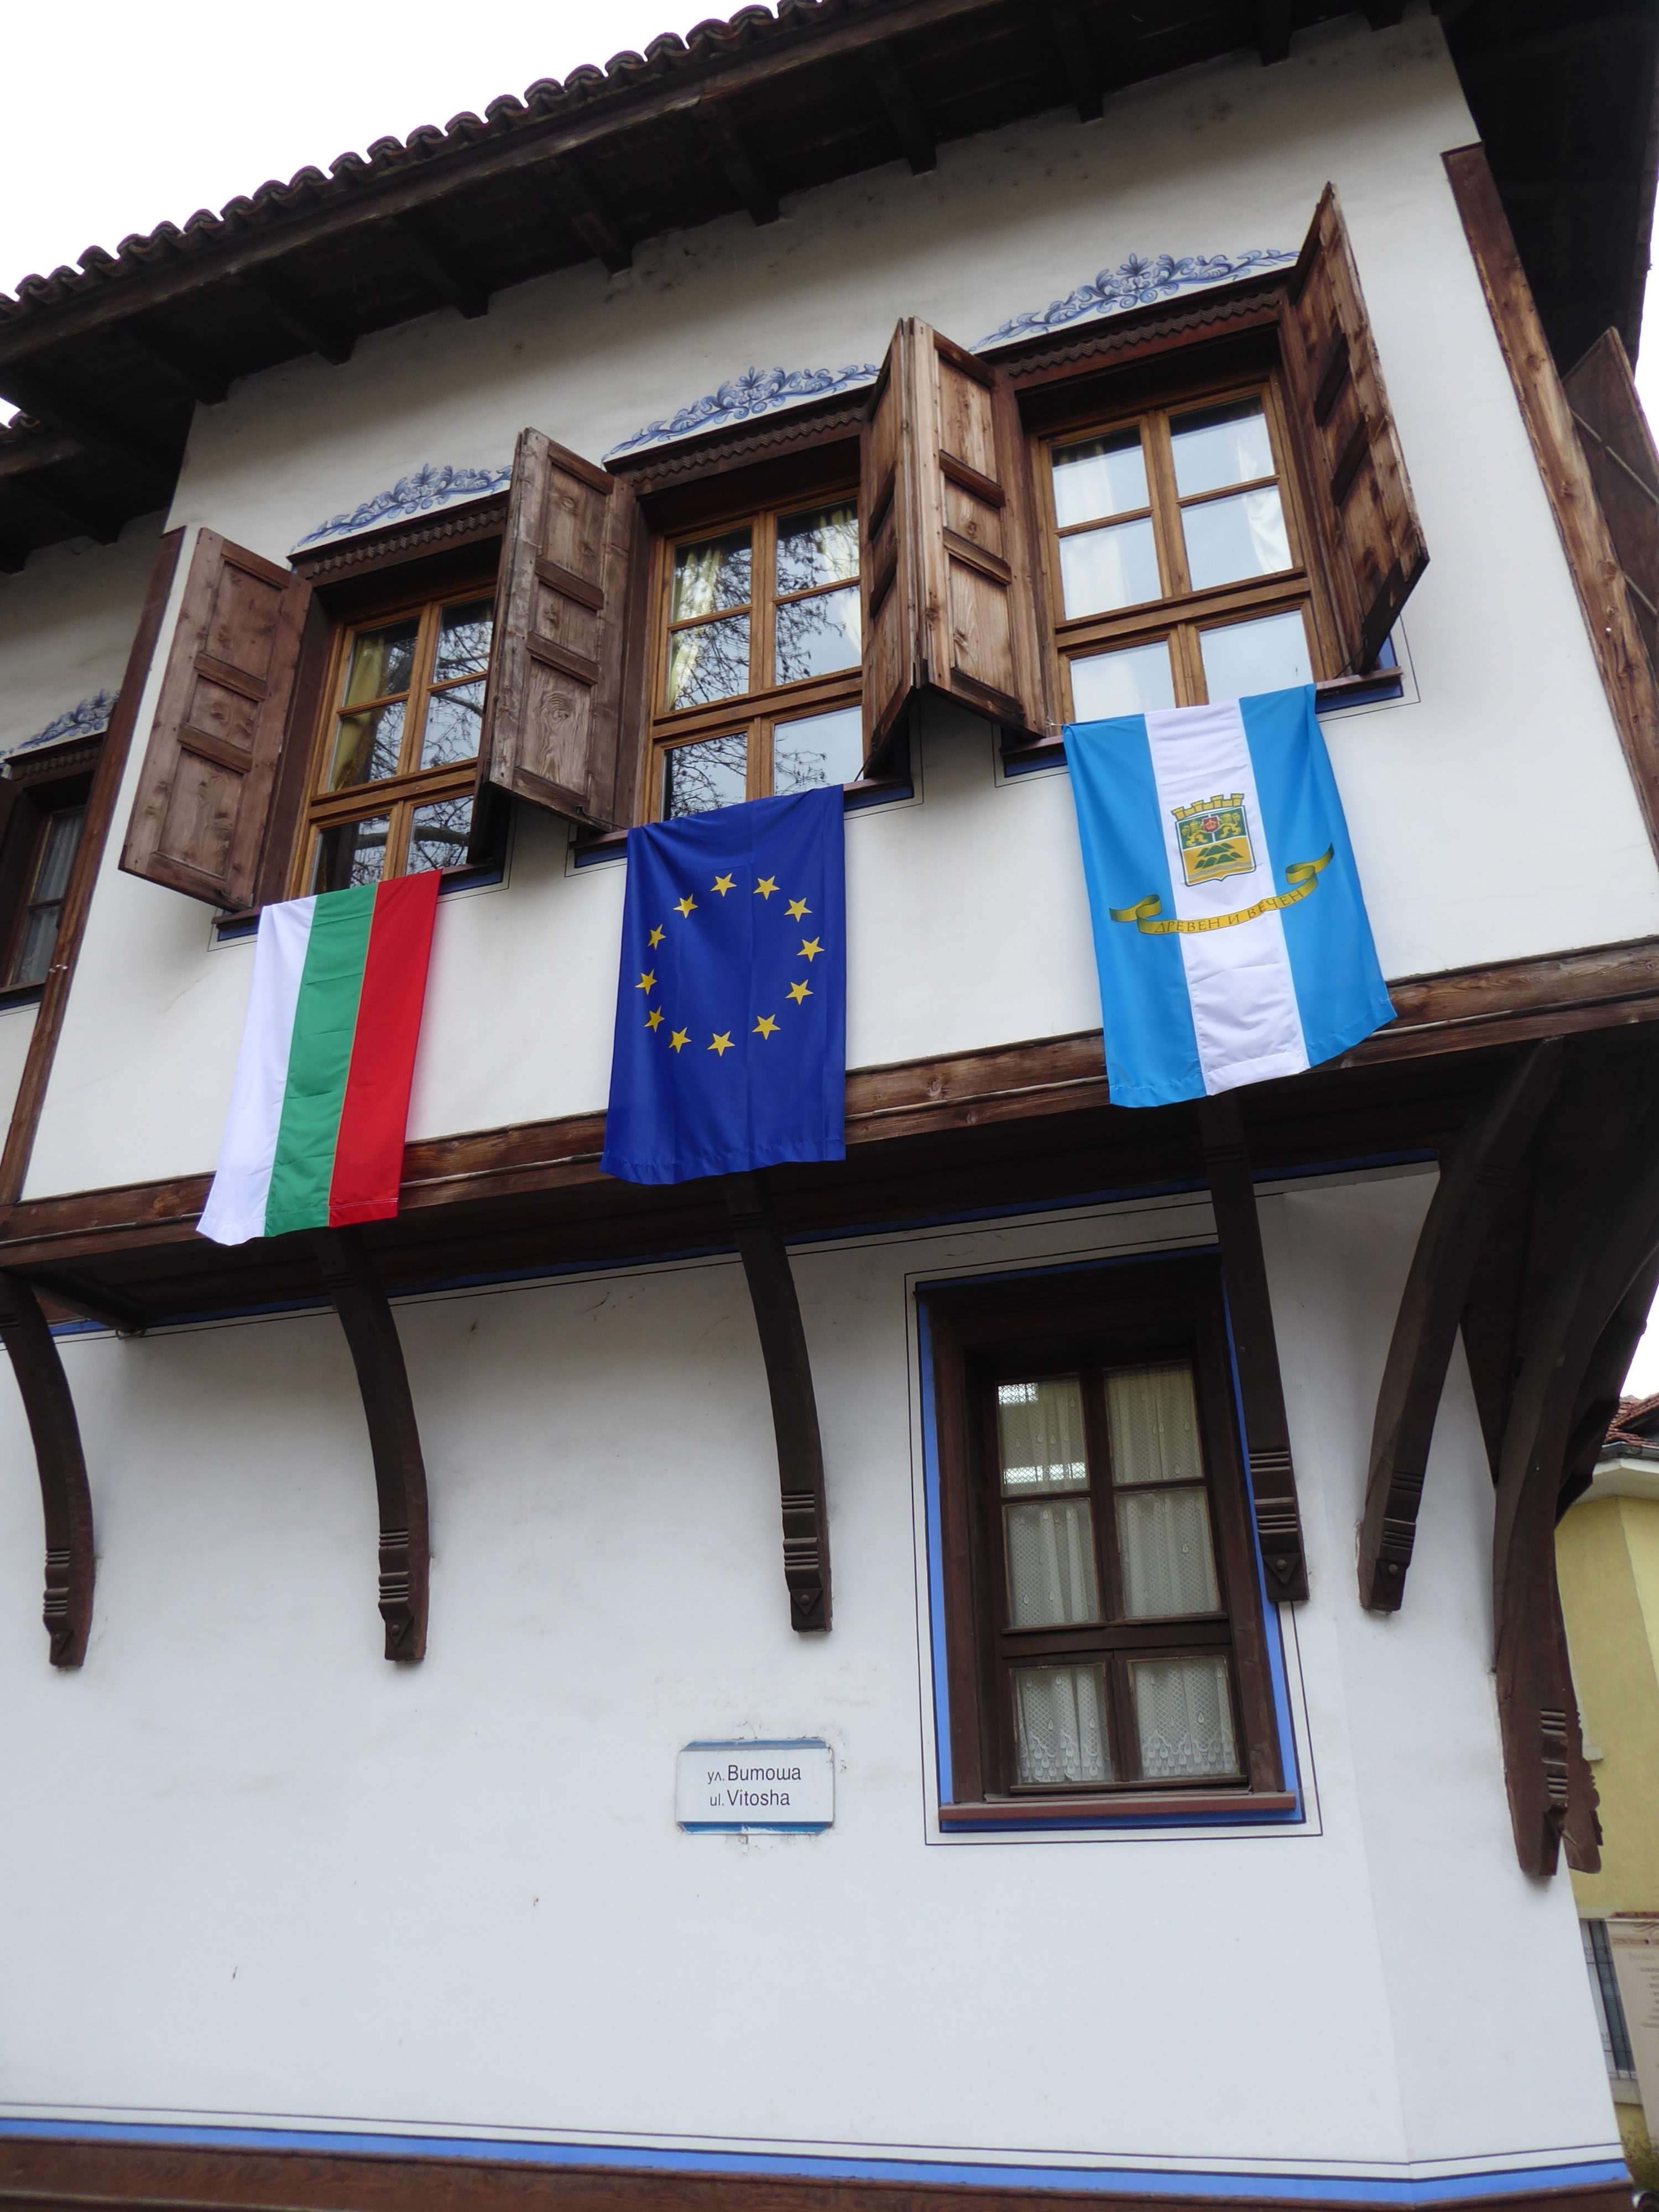 Building in the Old Town in Plovdiv. Flying 3 flags inc EU and Bulgaria and Local